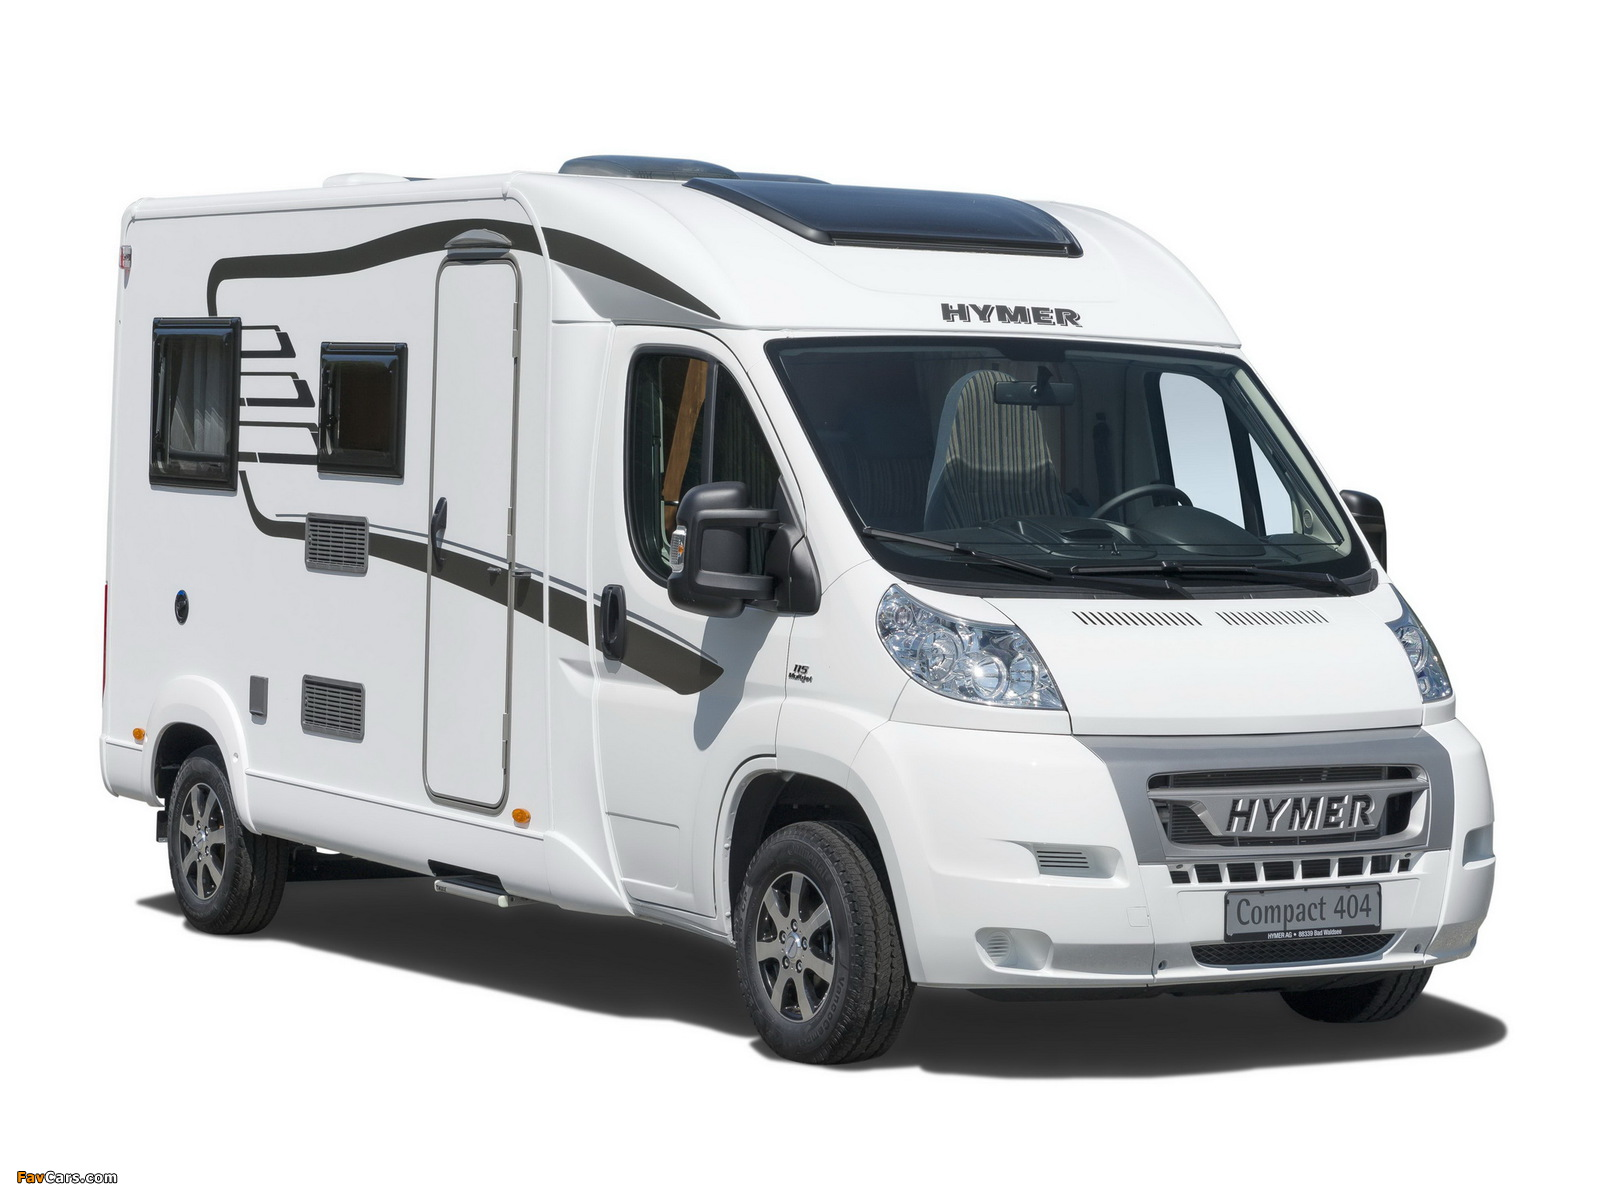 Hymer Compact 404 2013 wallpapers (1600 x 1200)